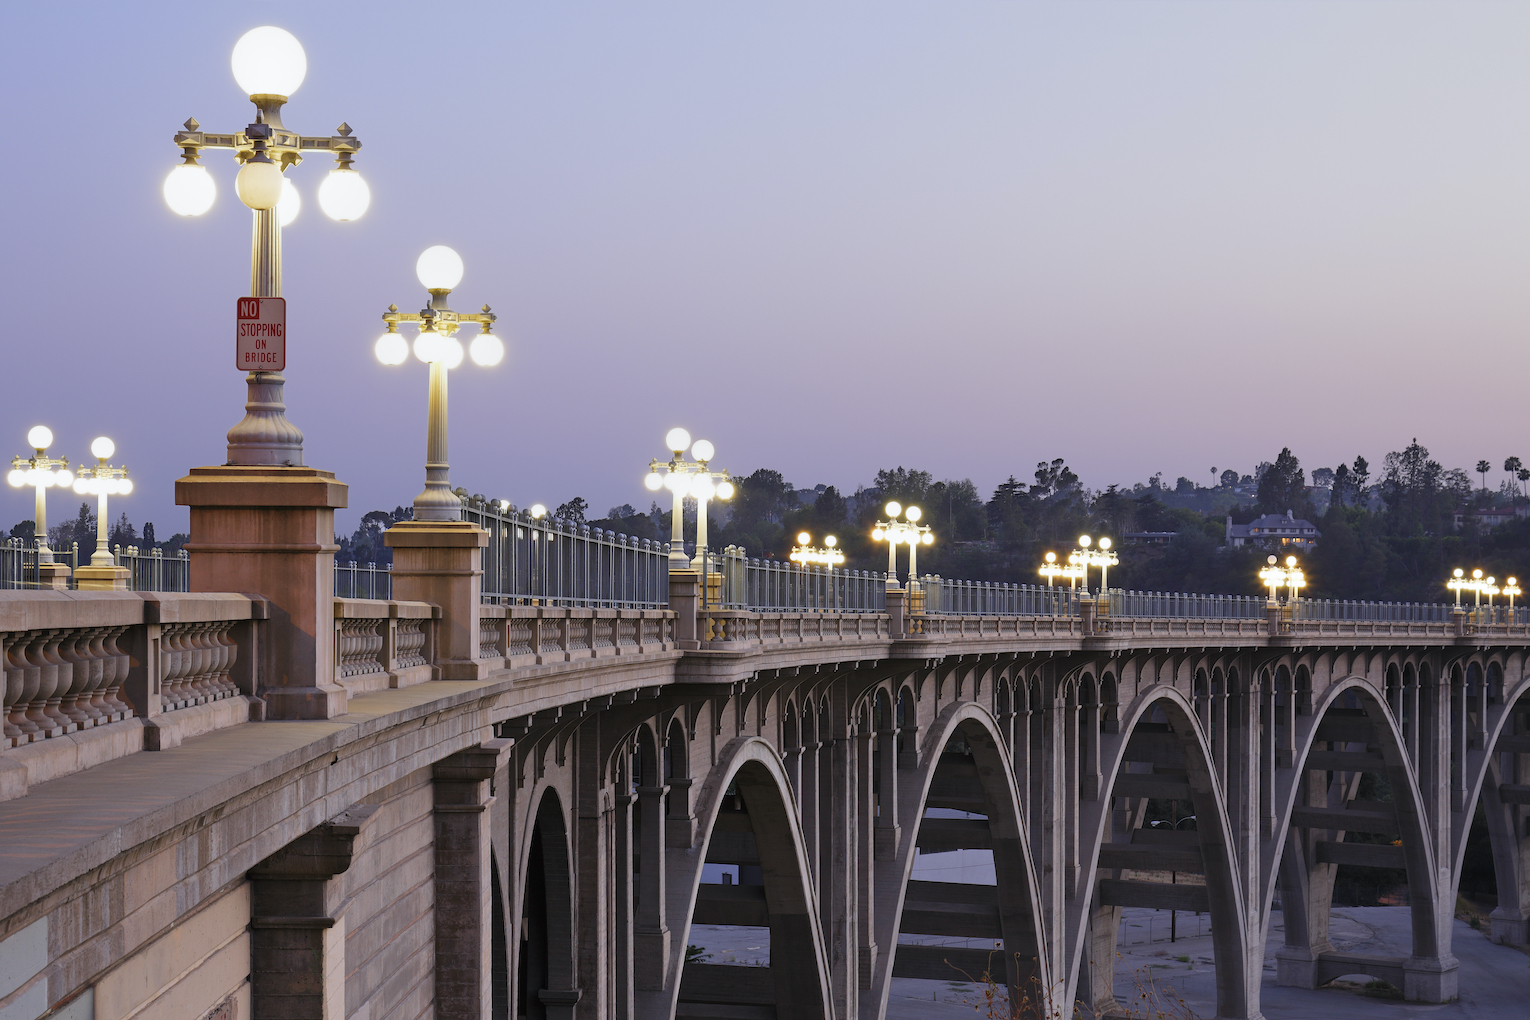 Bridge with lights in Pasadena